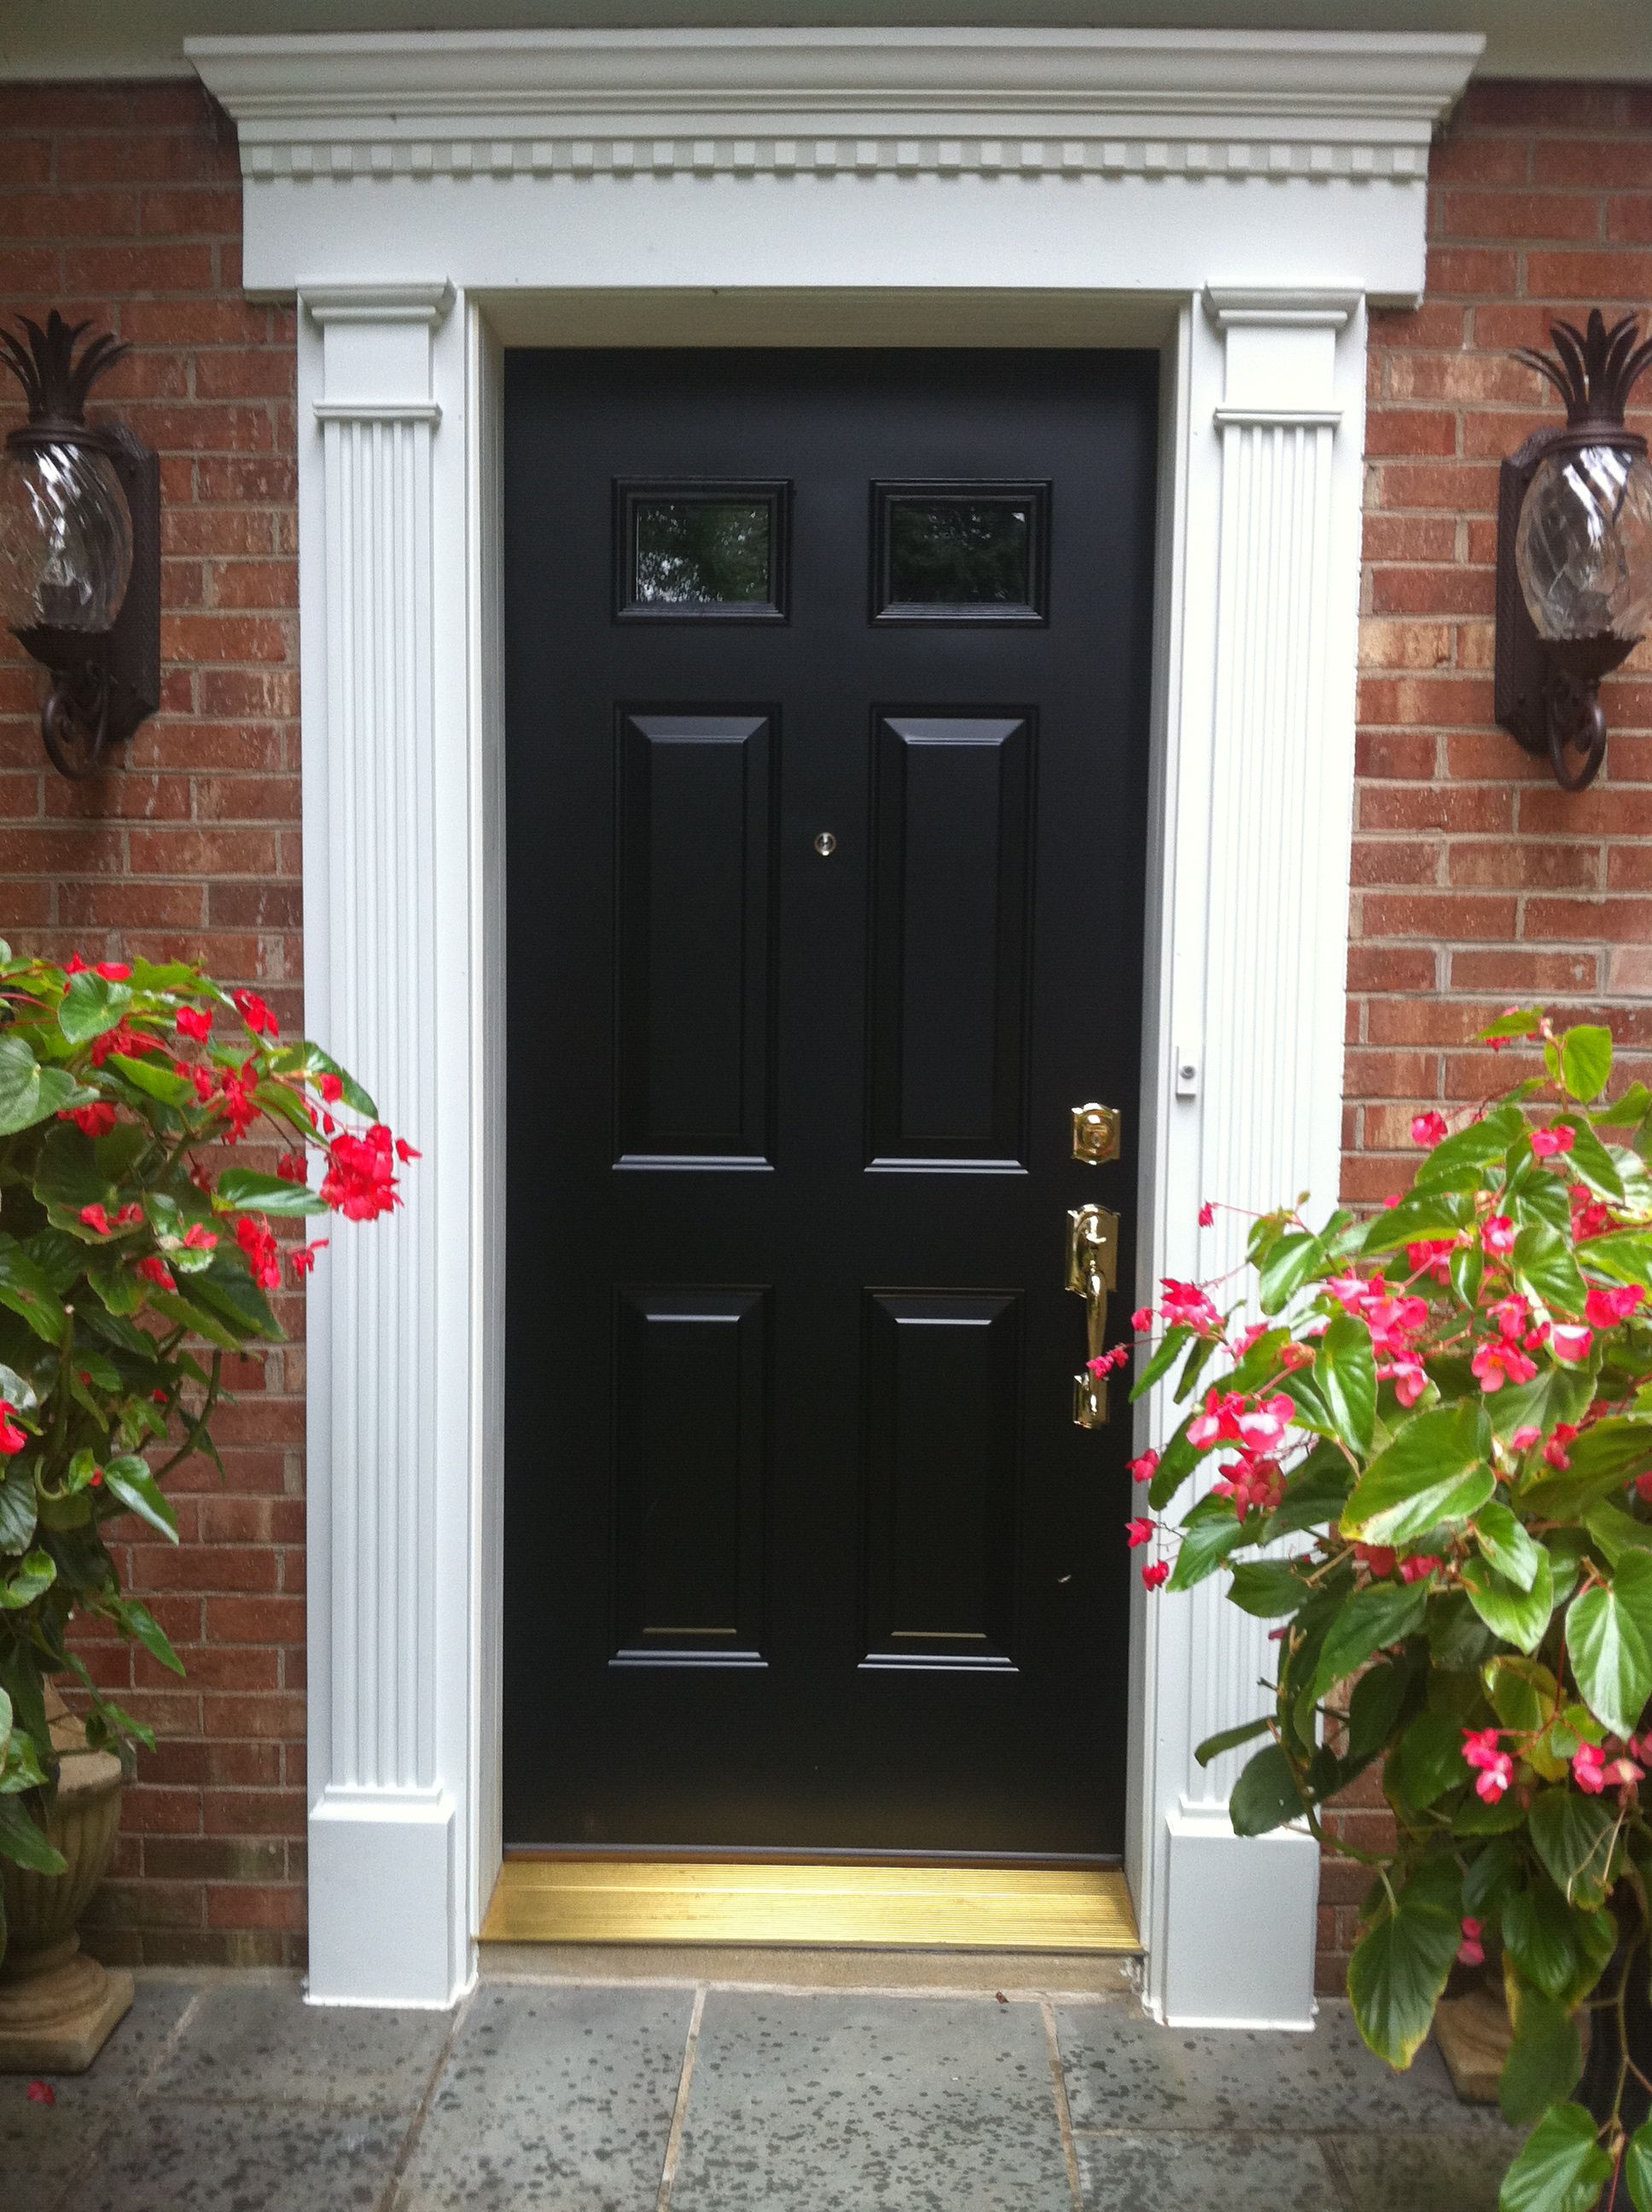 Lovely Black Wooden Exterior Front Door Ideas With White Trim As Well Red Bricked Walls Fabulous Decorating Inspirations For